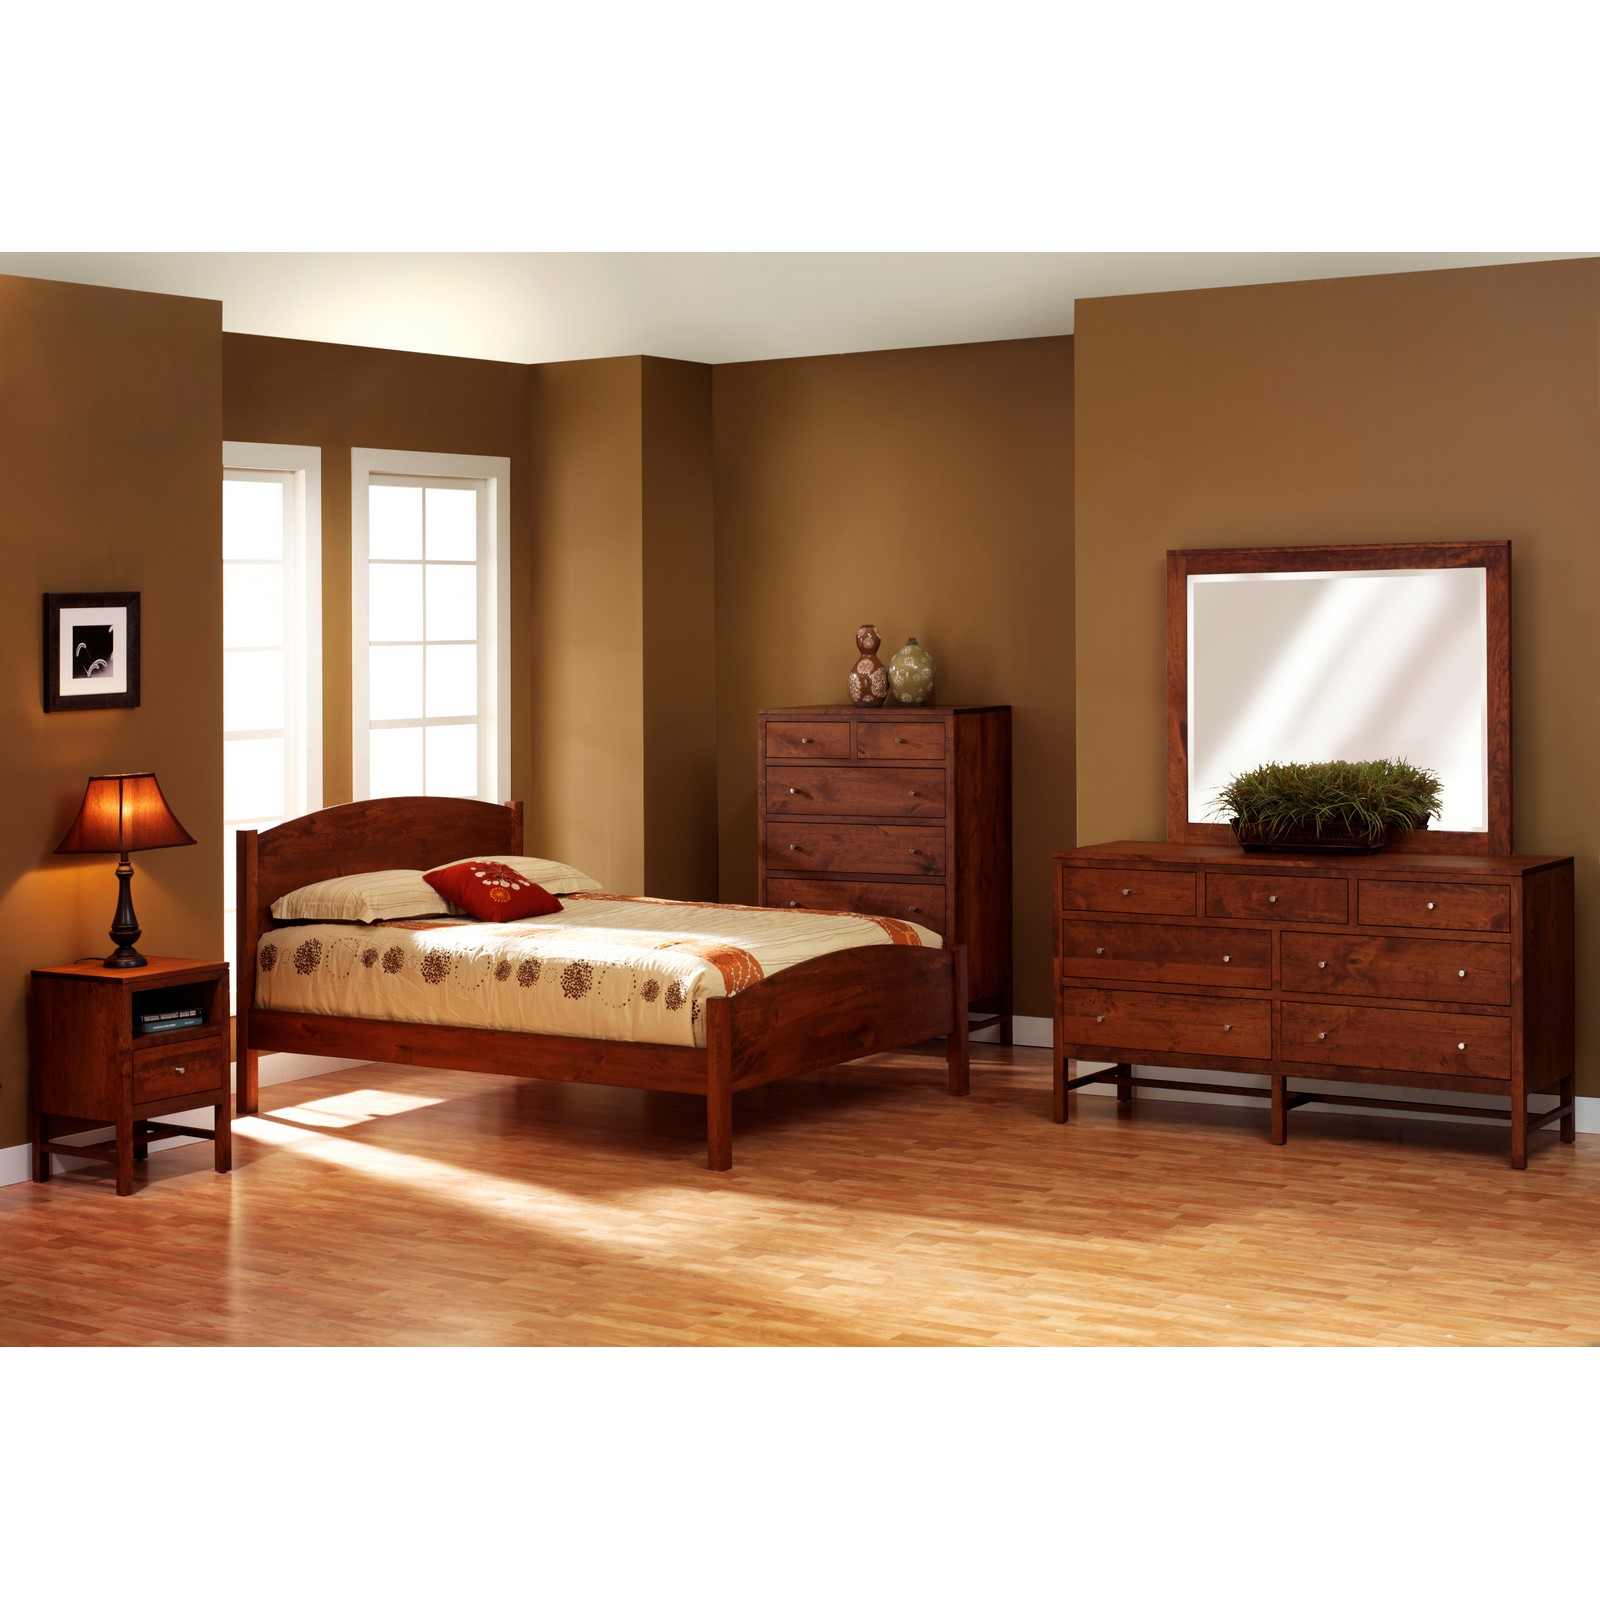 Millcraft lynnwood eclipse bedroom set stewart roth furniture - Amish bedroom furniture ...